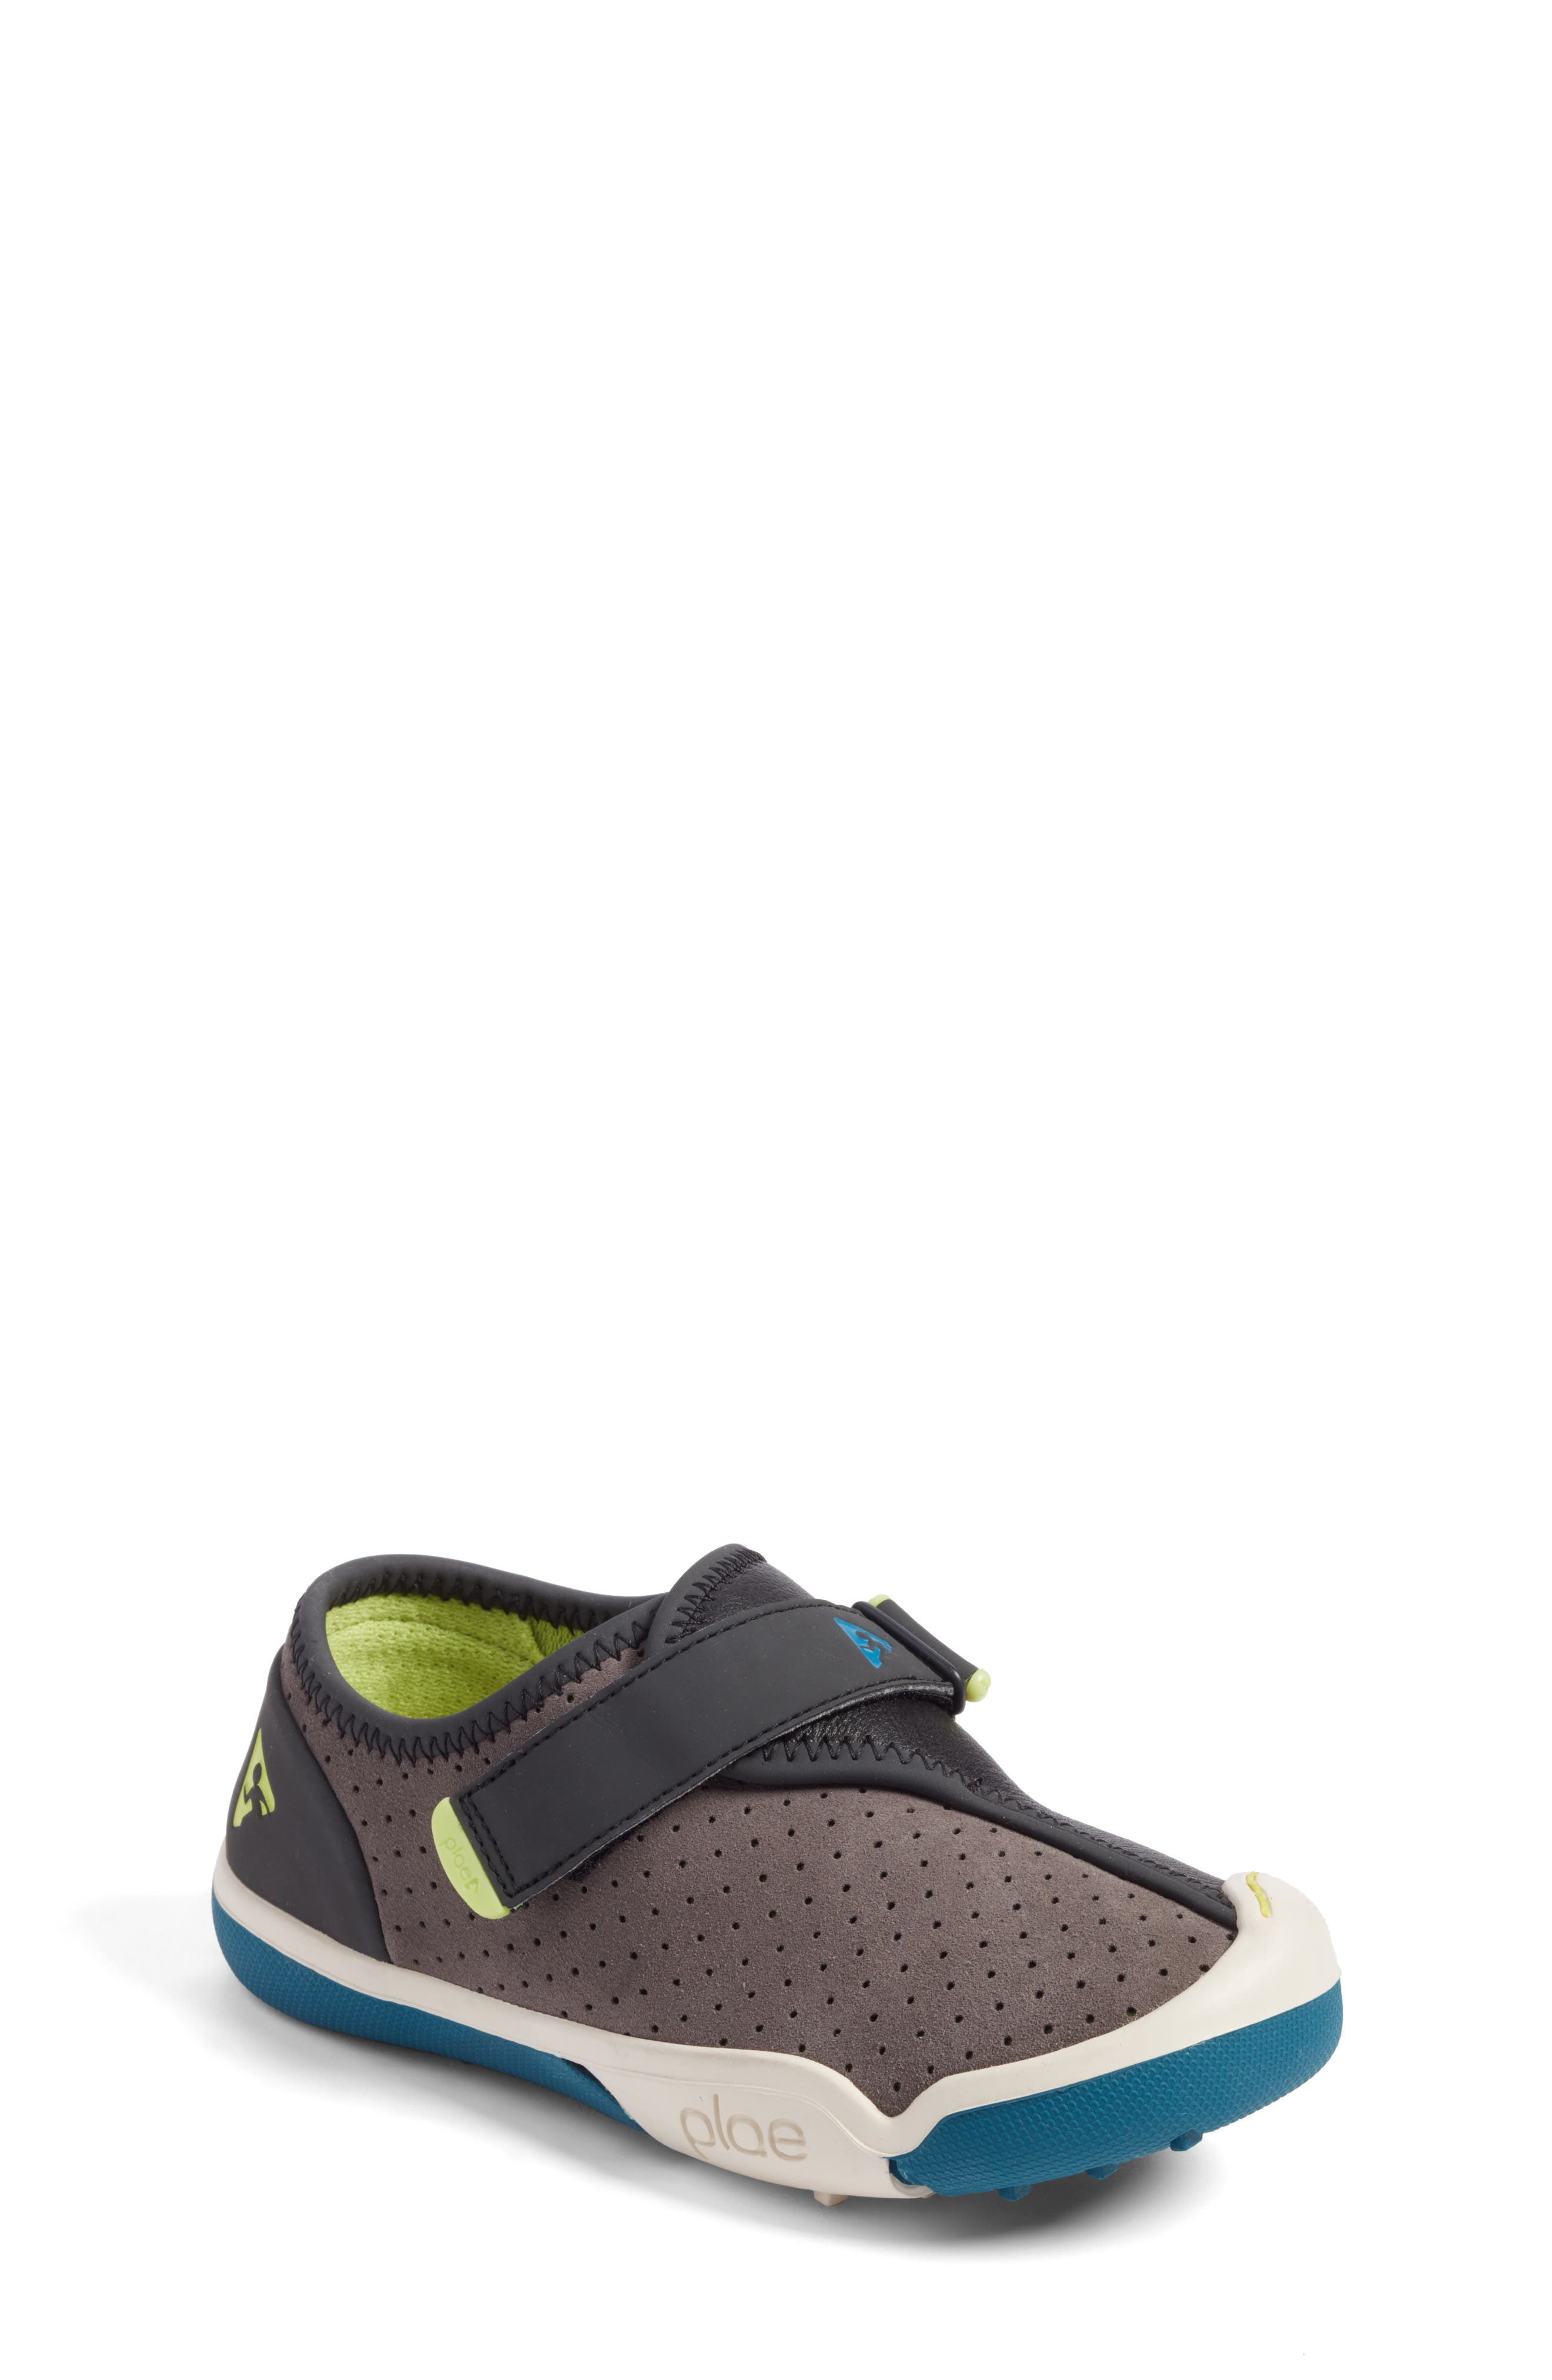 Cam Perforated Sneaker,                         Main,                         color, 025